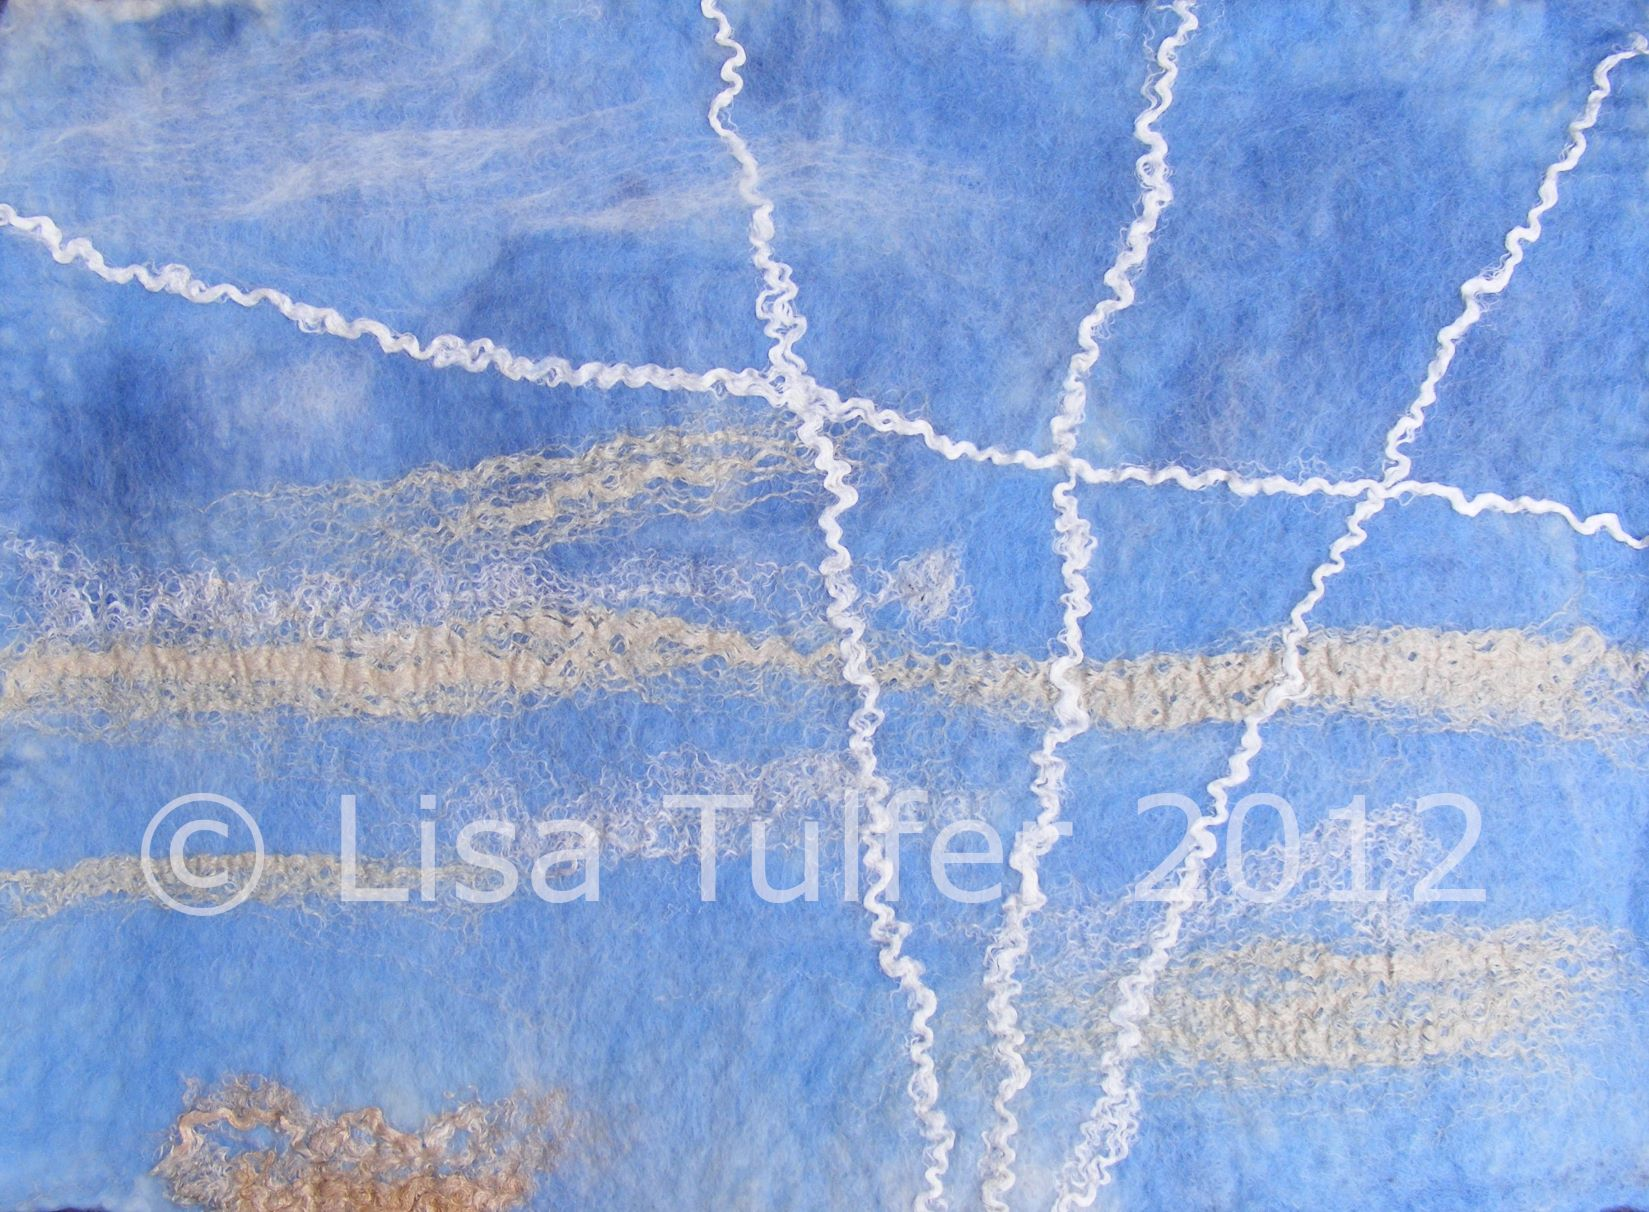 Image of textile art. Skyscape in blue wool with vapour trails and clouds suggested in white and oyster silk. Image and art copyright Lisa Tulfer 2012.